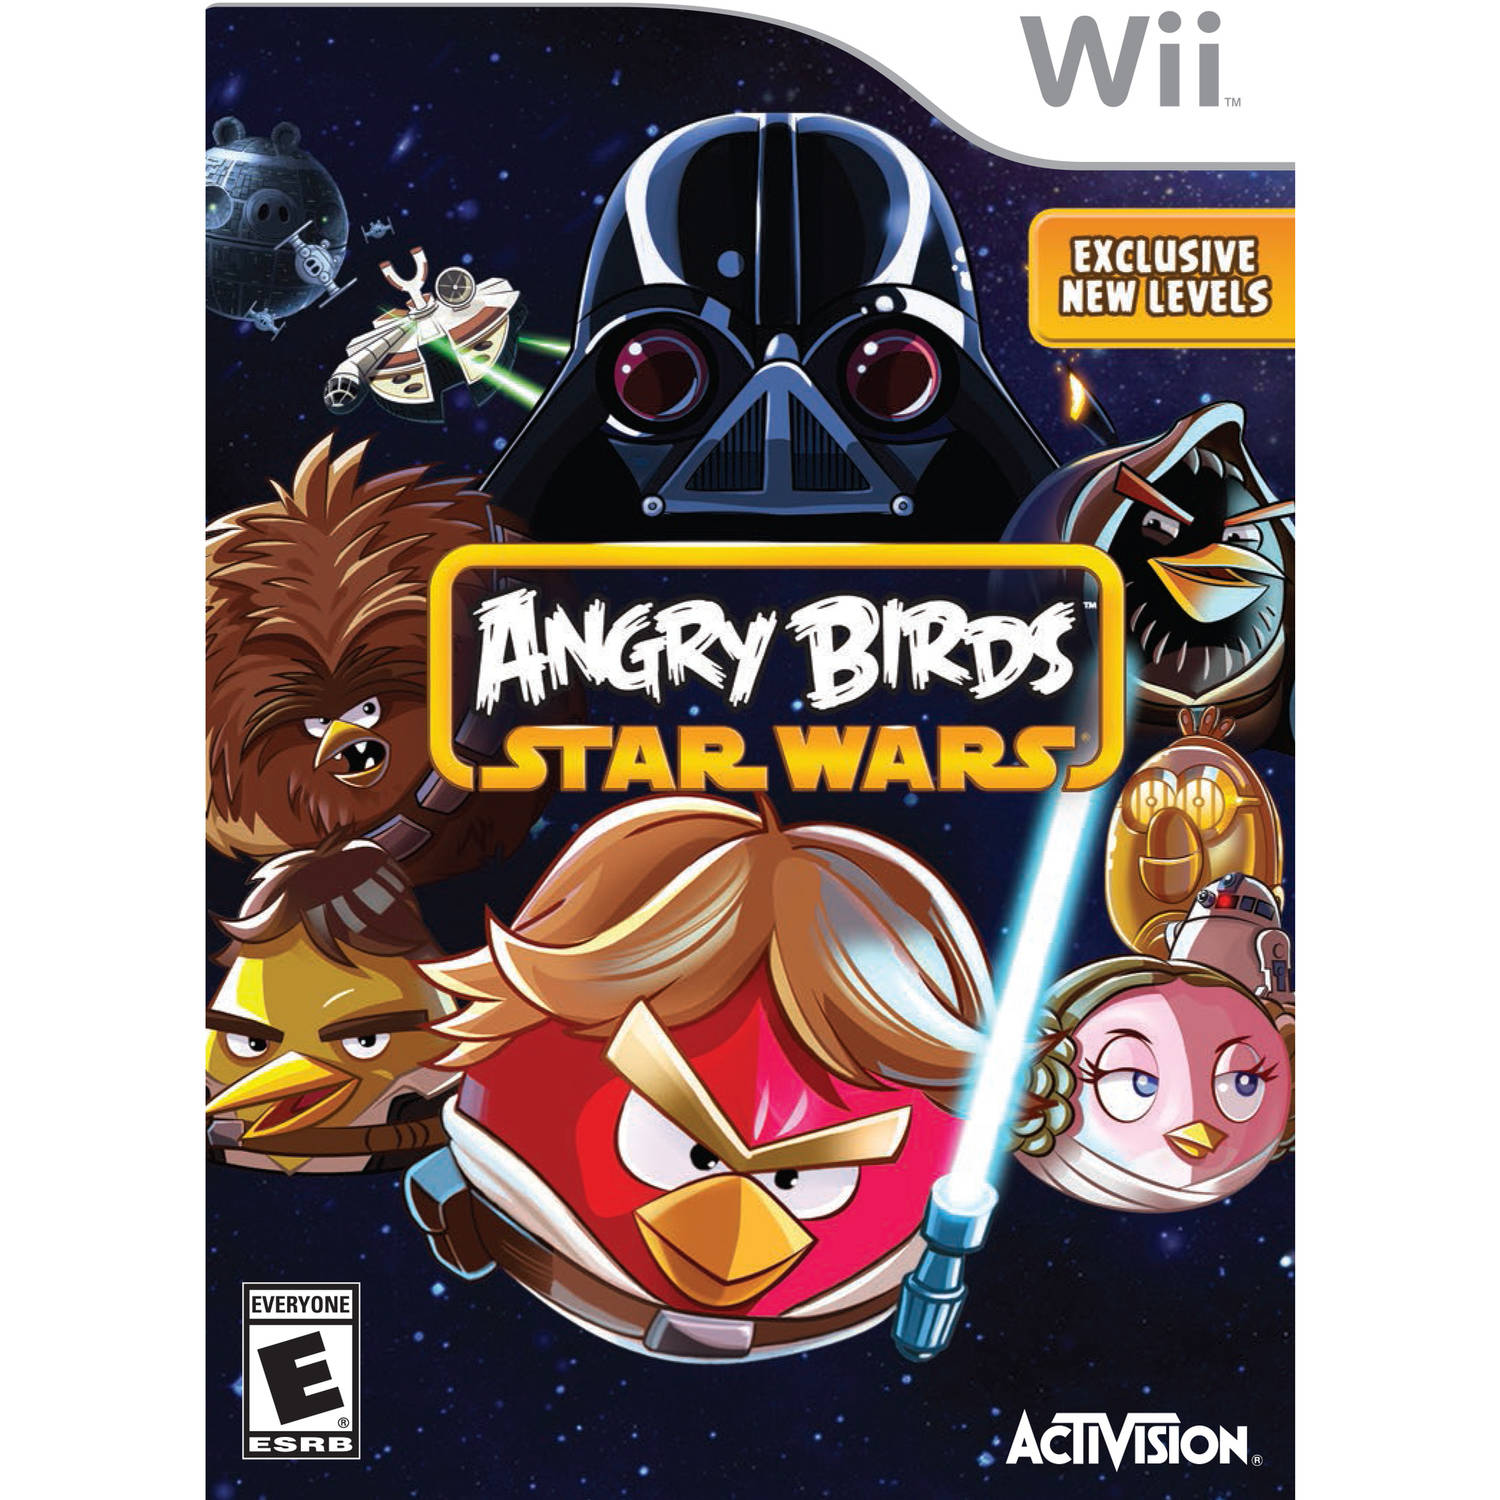 Angry Birds Star Wars (Wii) - Pre-Owned